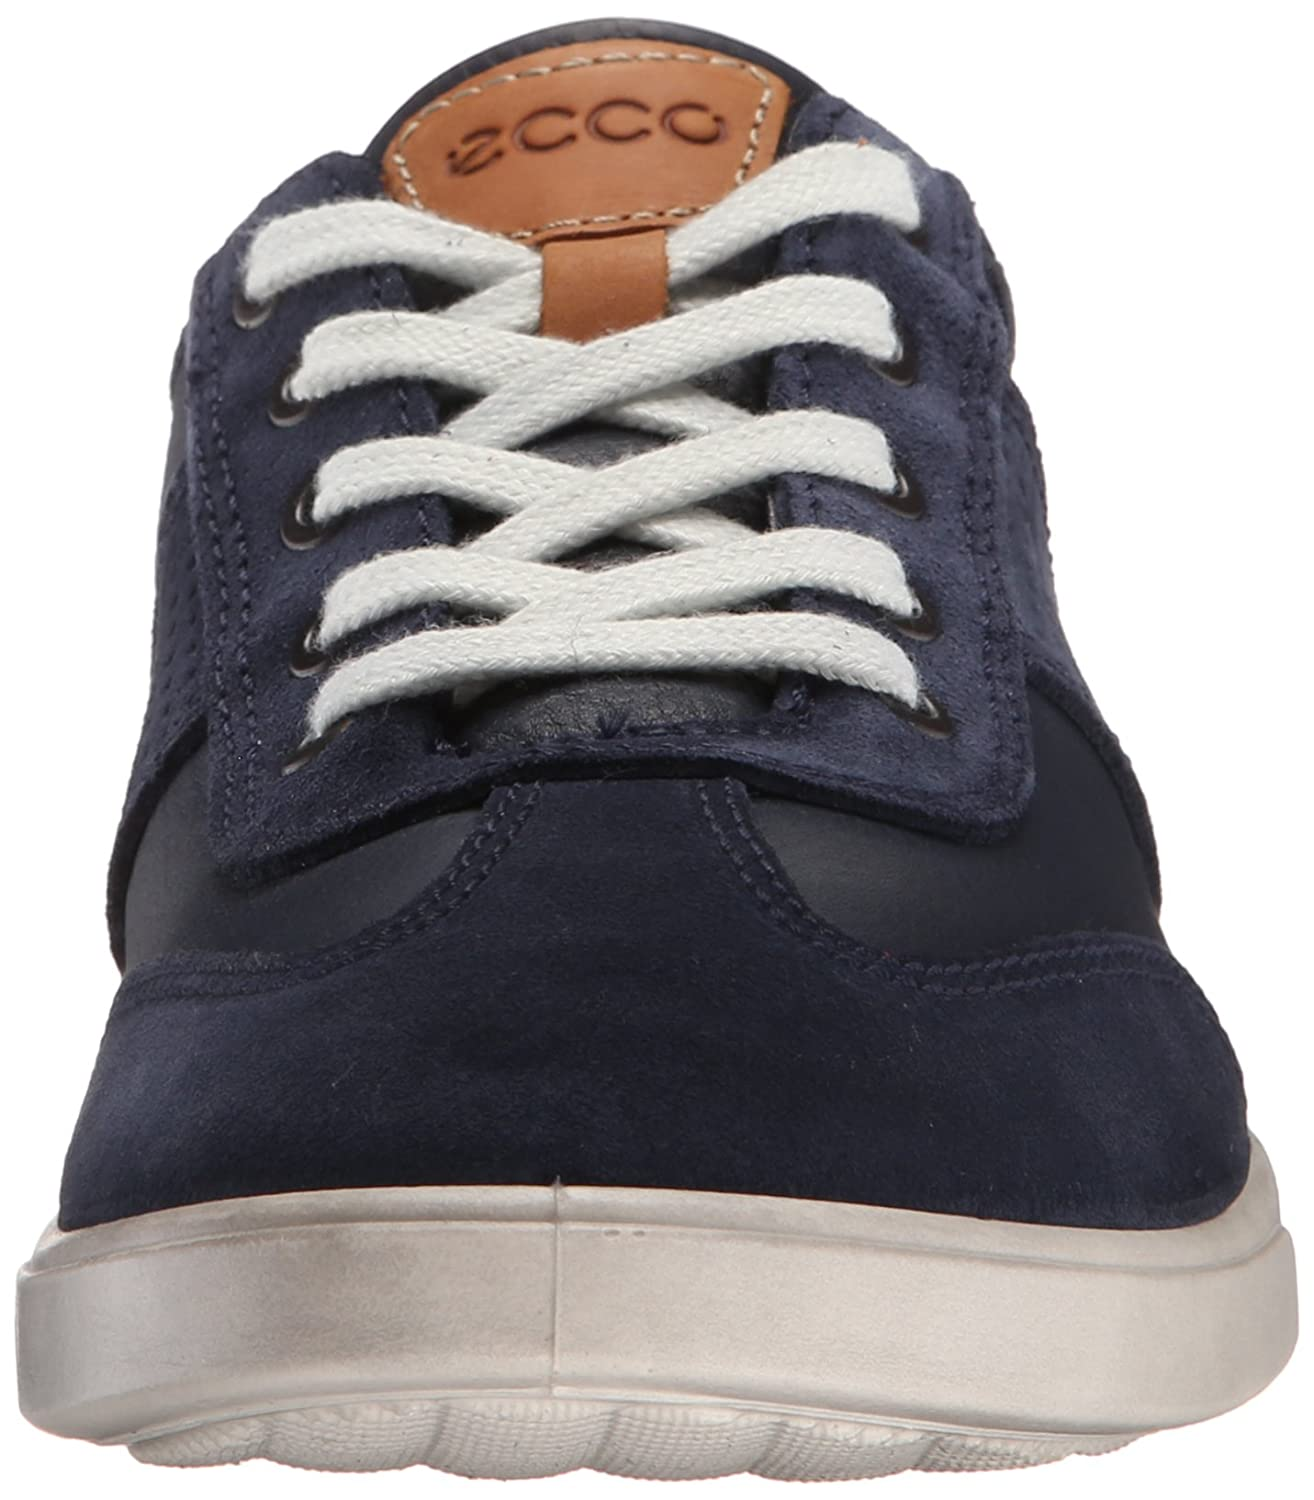 ECCO Men's Shoes Men's ECCO Collin Retro Fashion Sneaker B010RRXGAG Fashion Sneakers 03186a